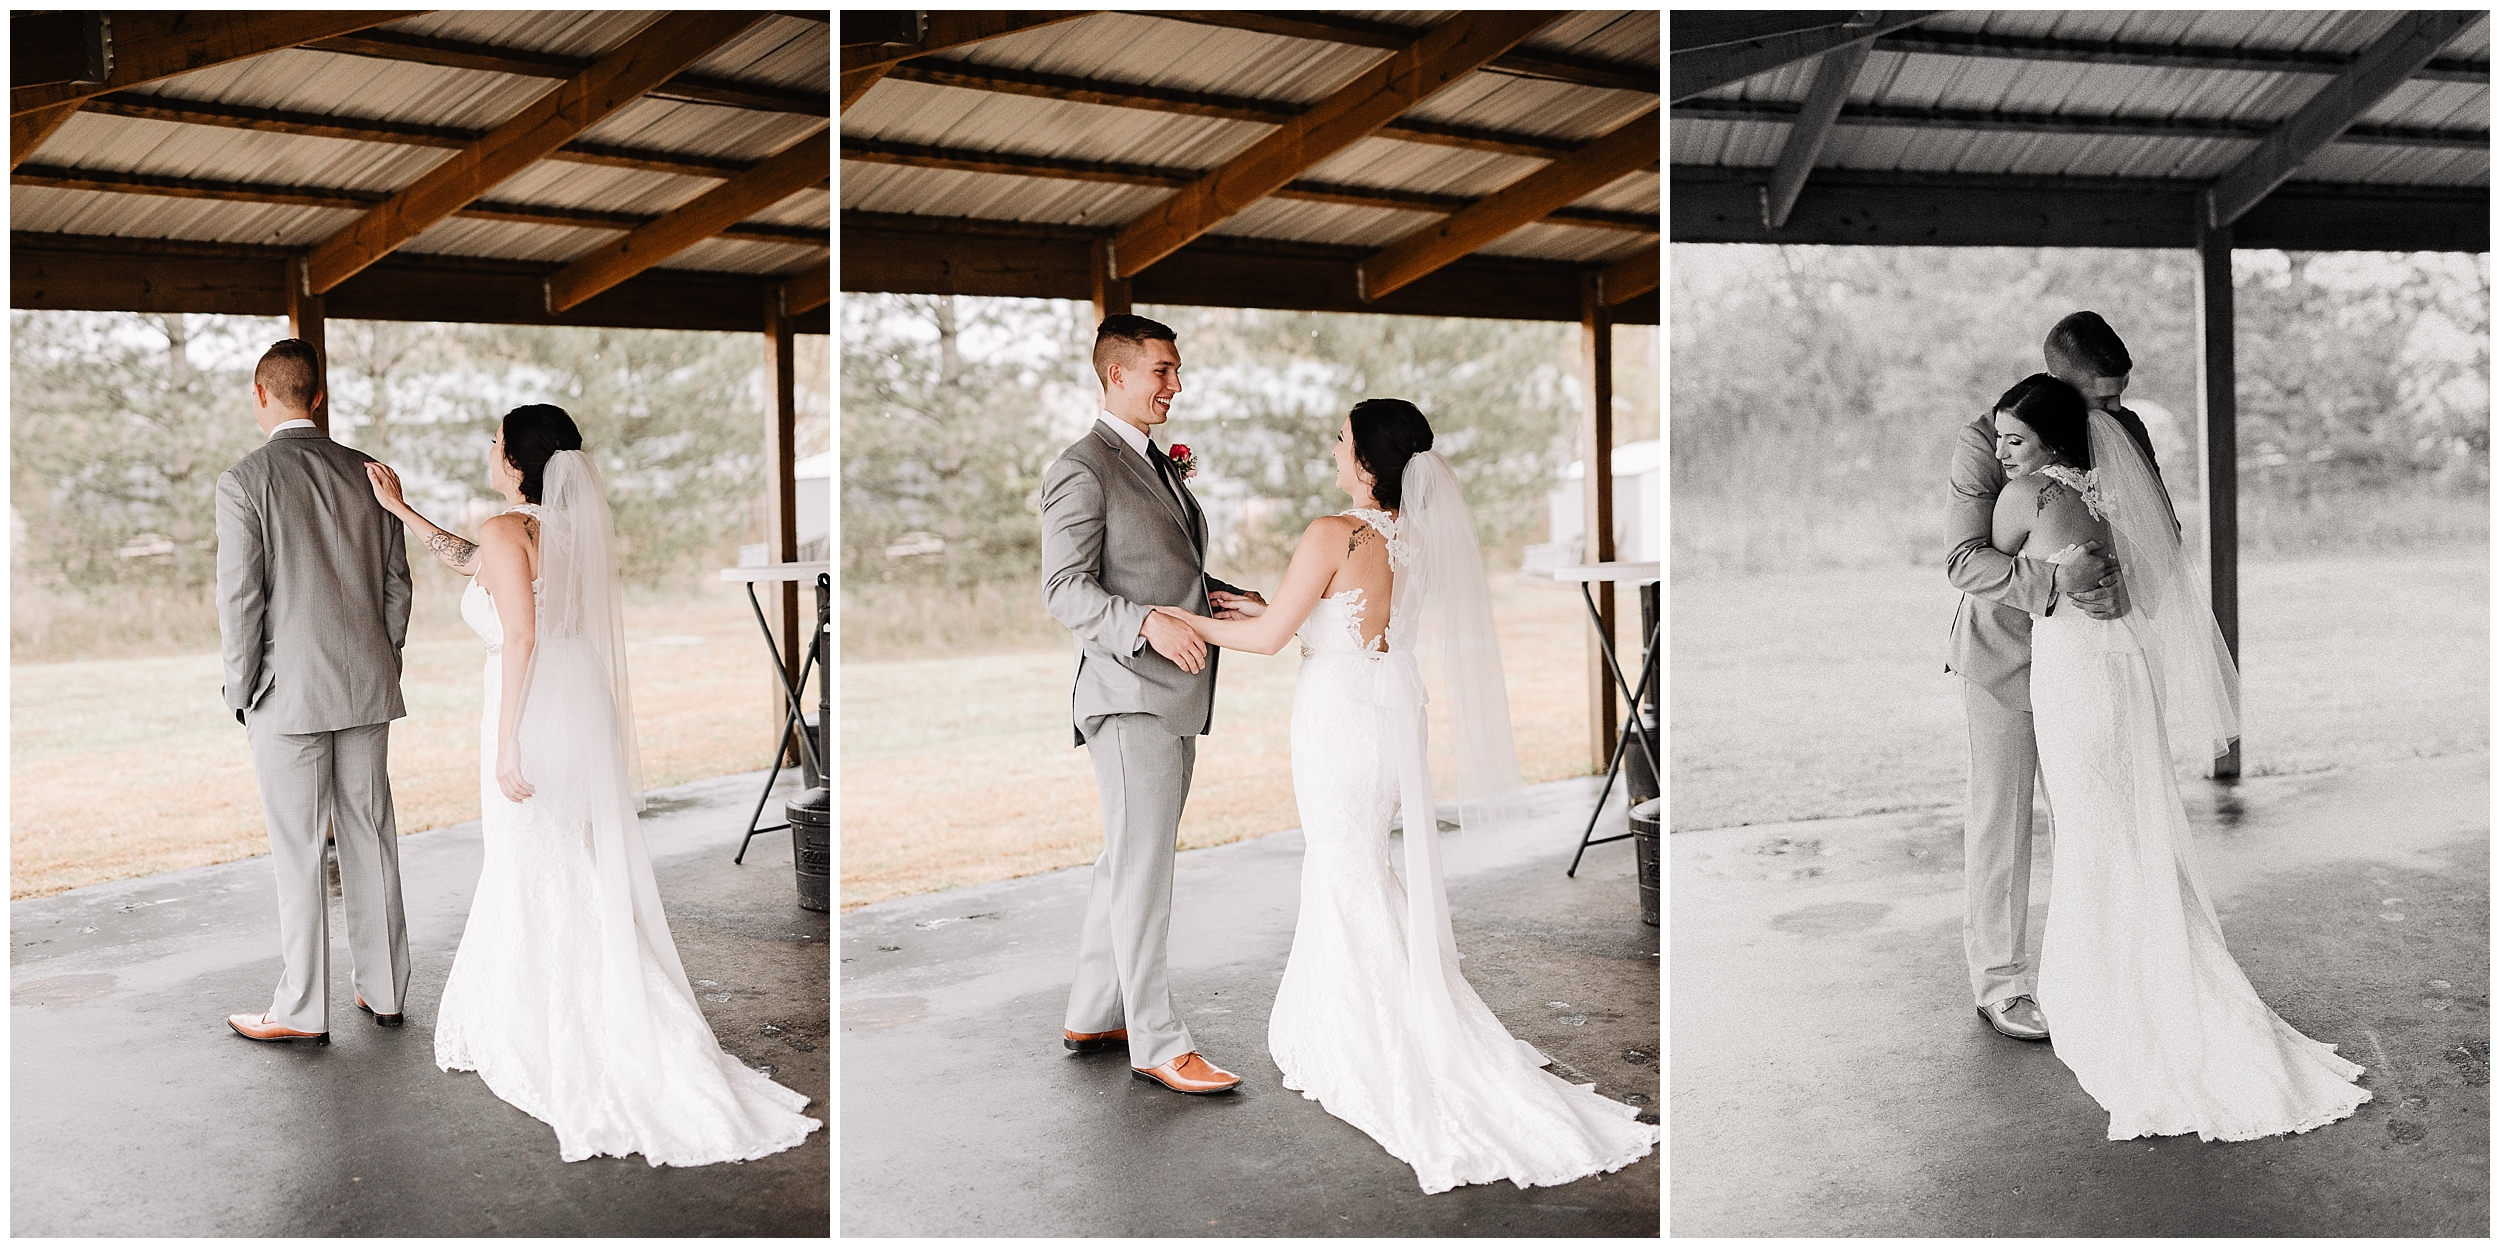 oklahoma wedding photography first look bride groom wedding day sweet viola kansas rustic pines